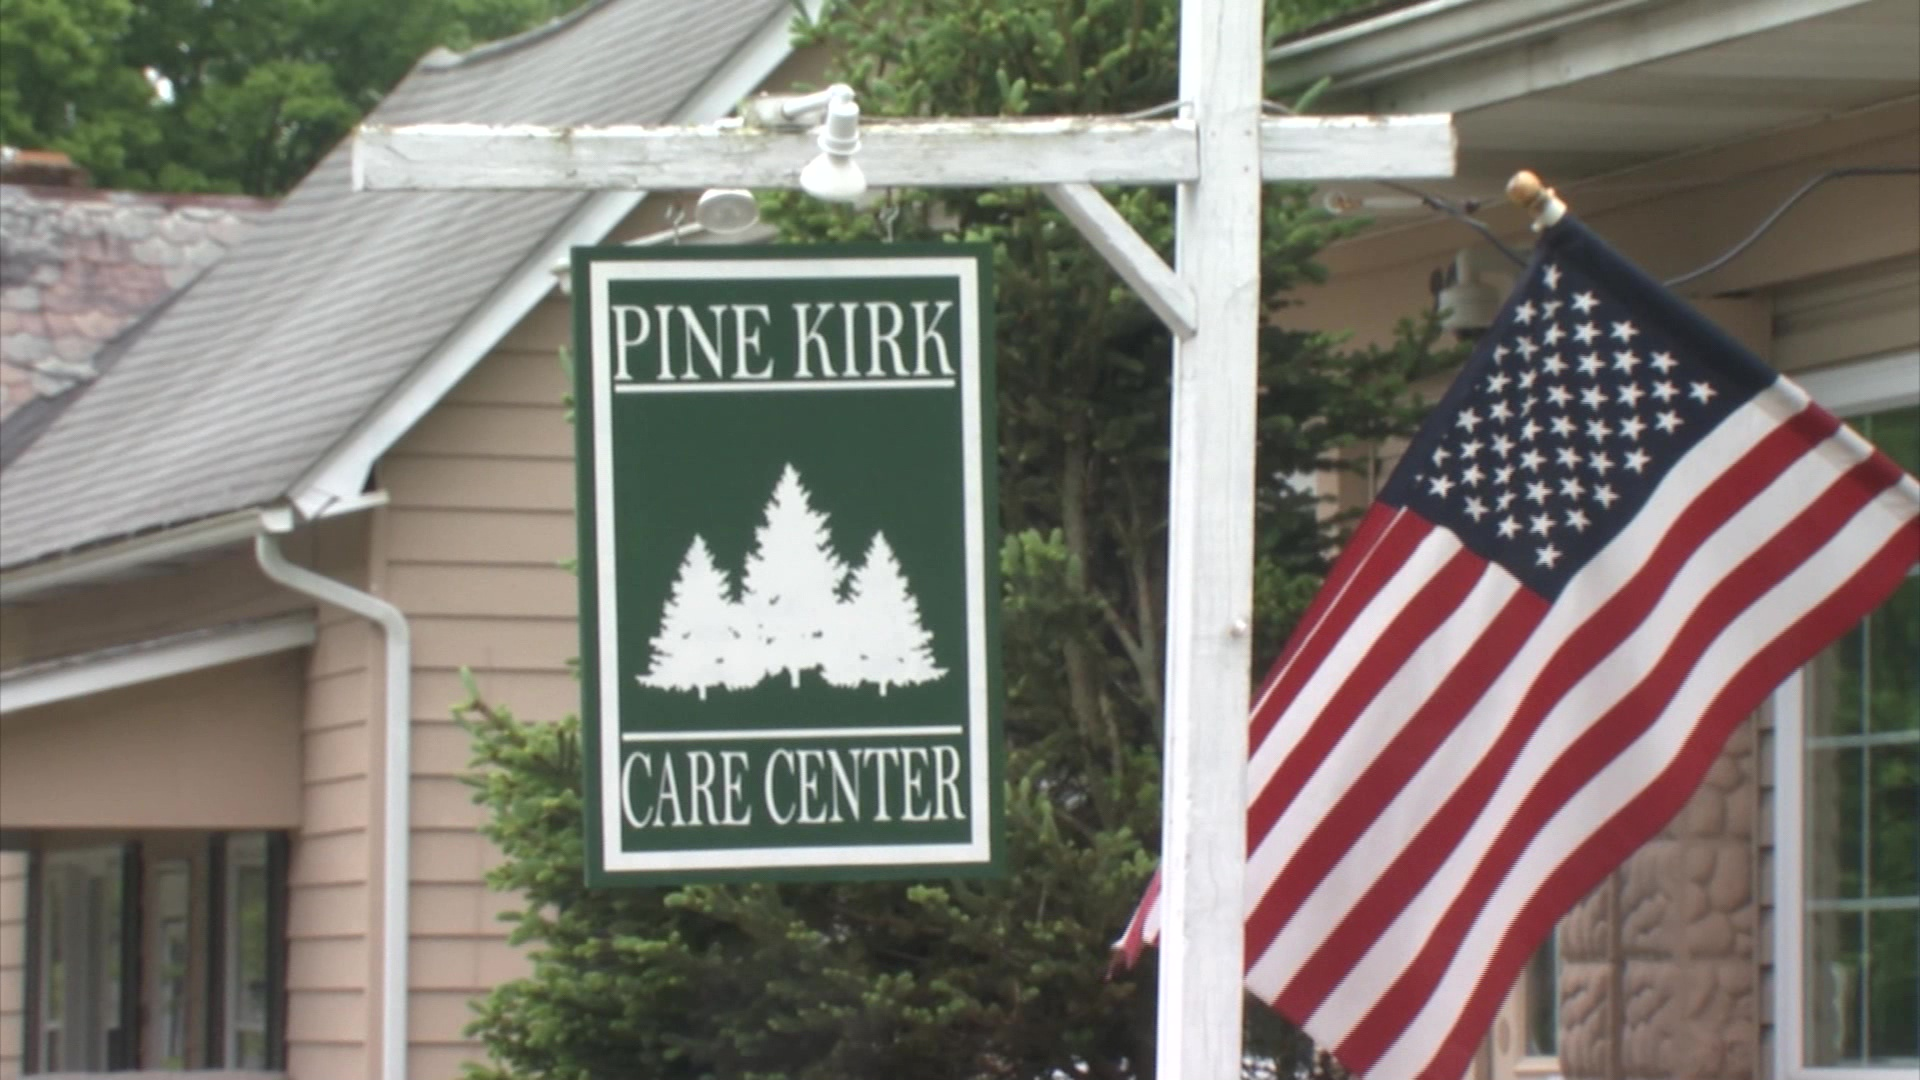 Pine Kirk Care Center